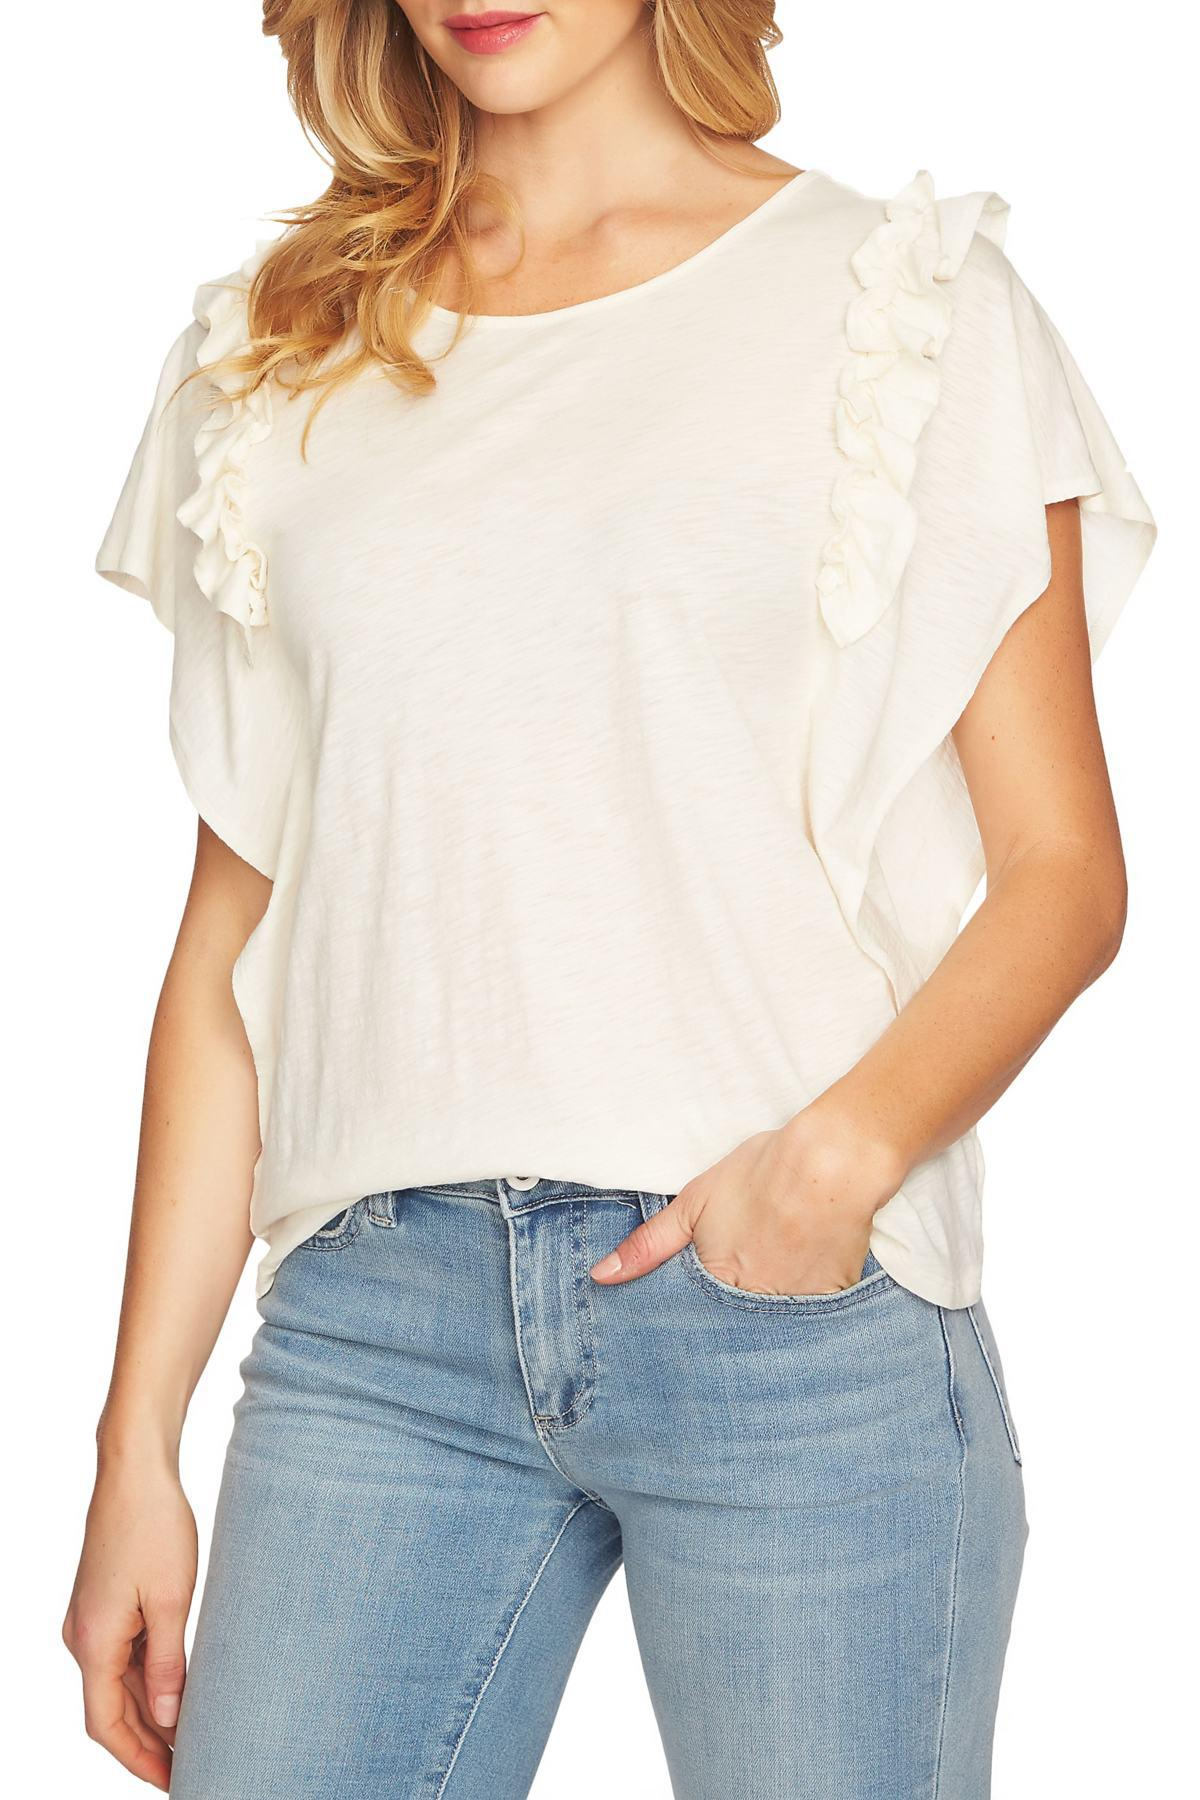 660e7f22870c1 Cece by Cynthia Steffe. Women s Ruffle Sleeve Top